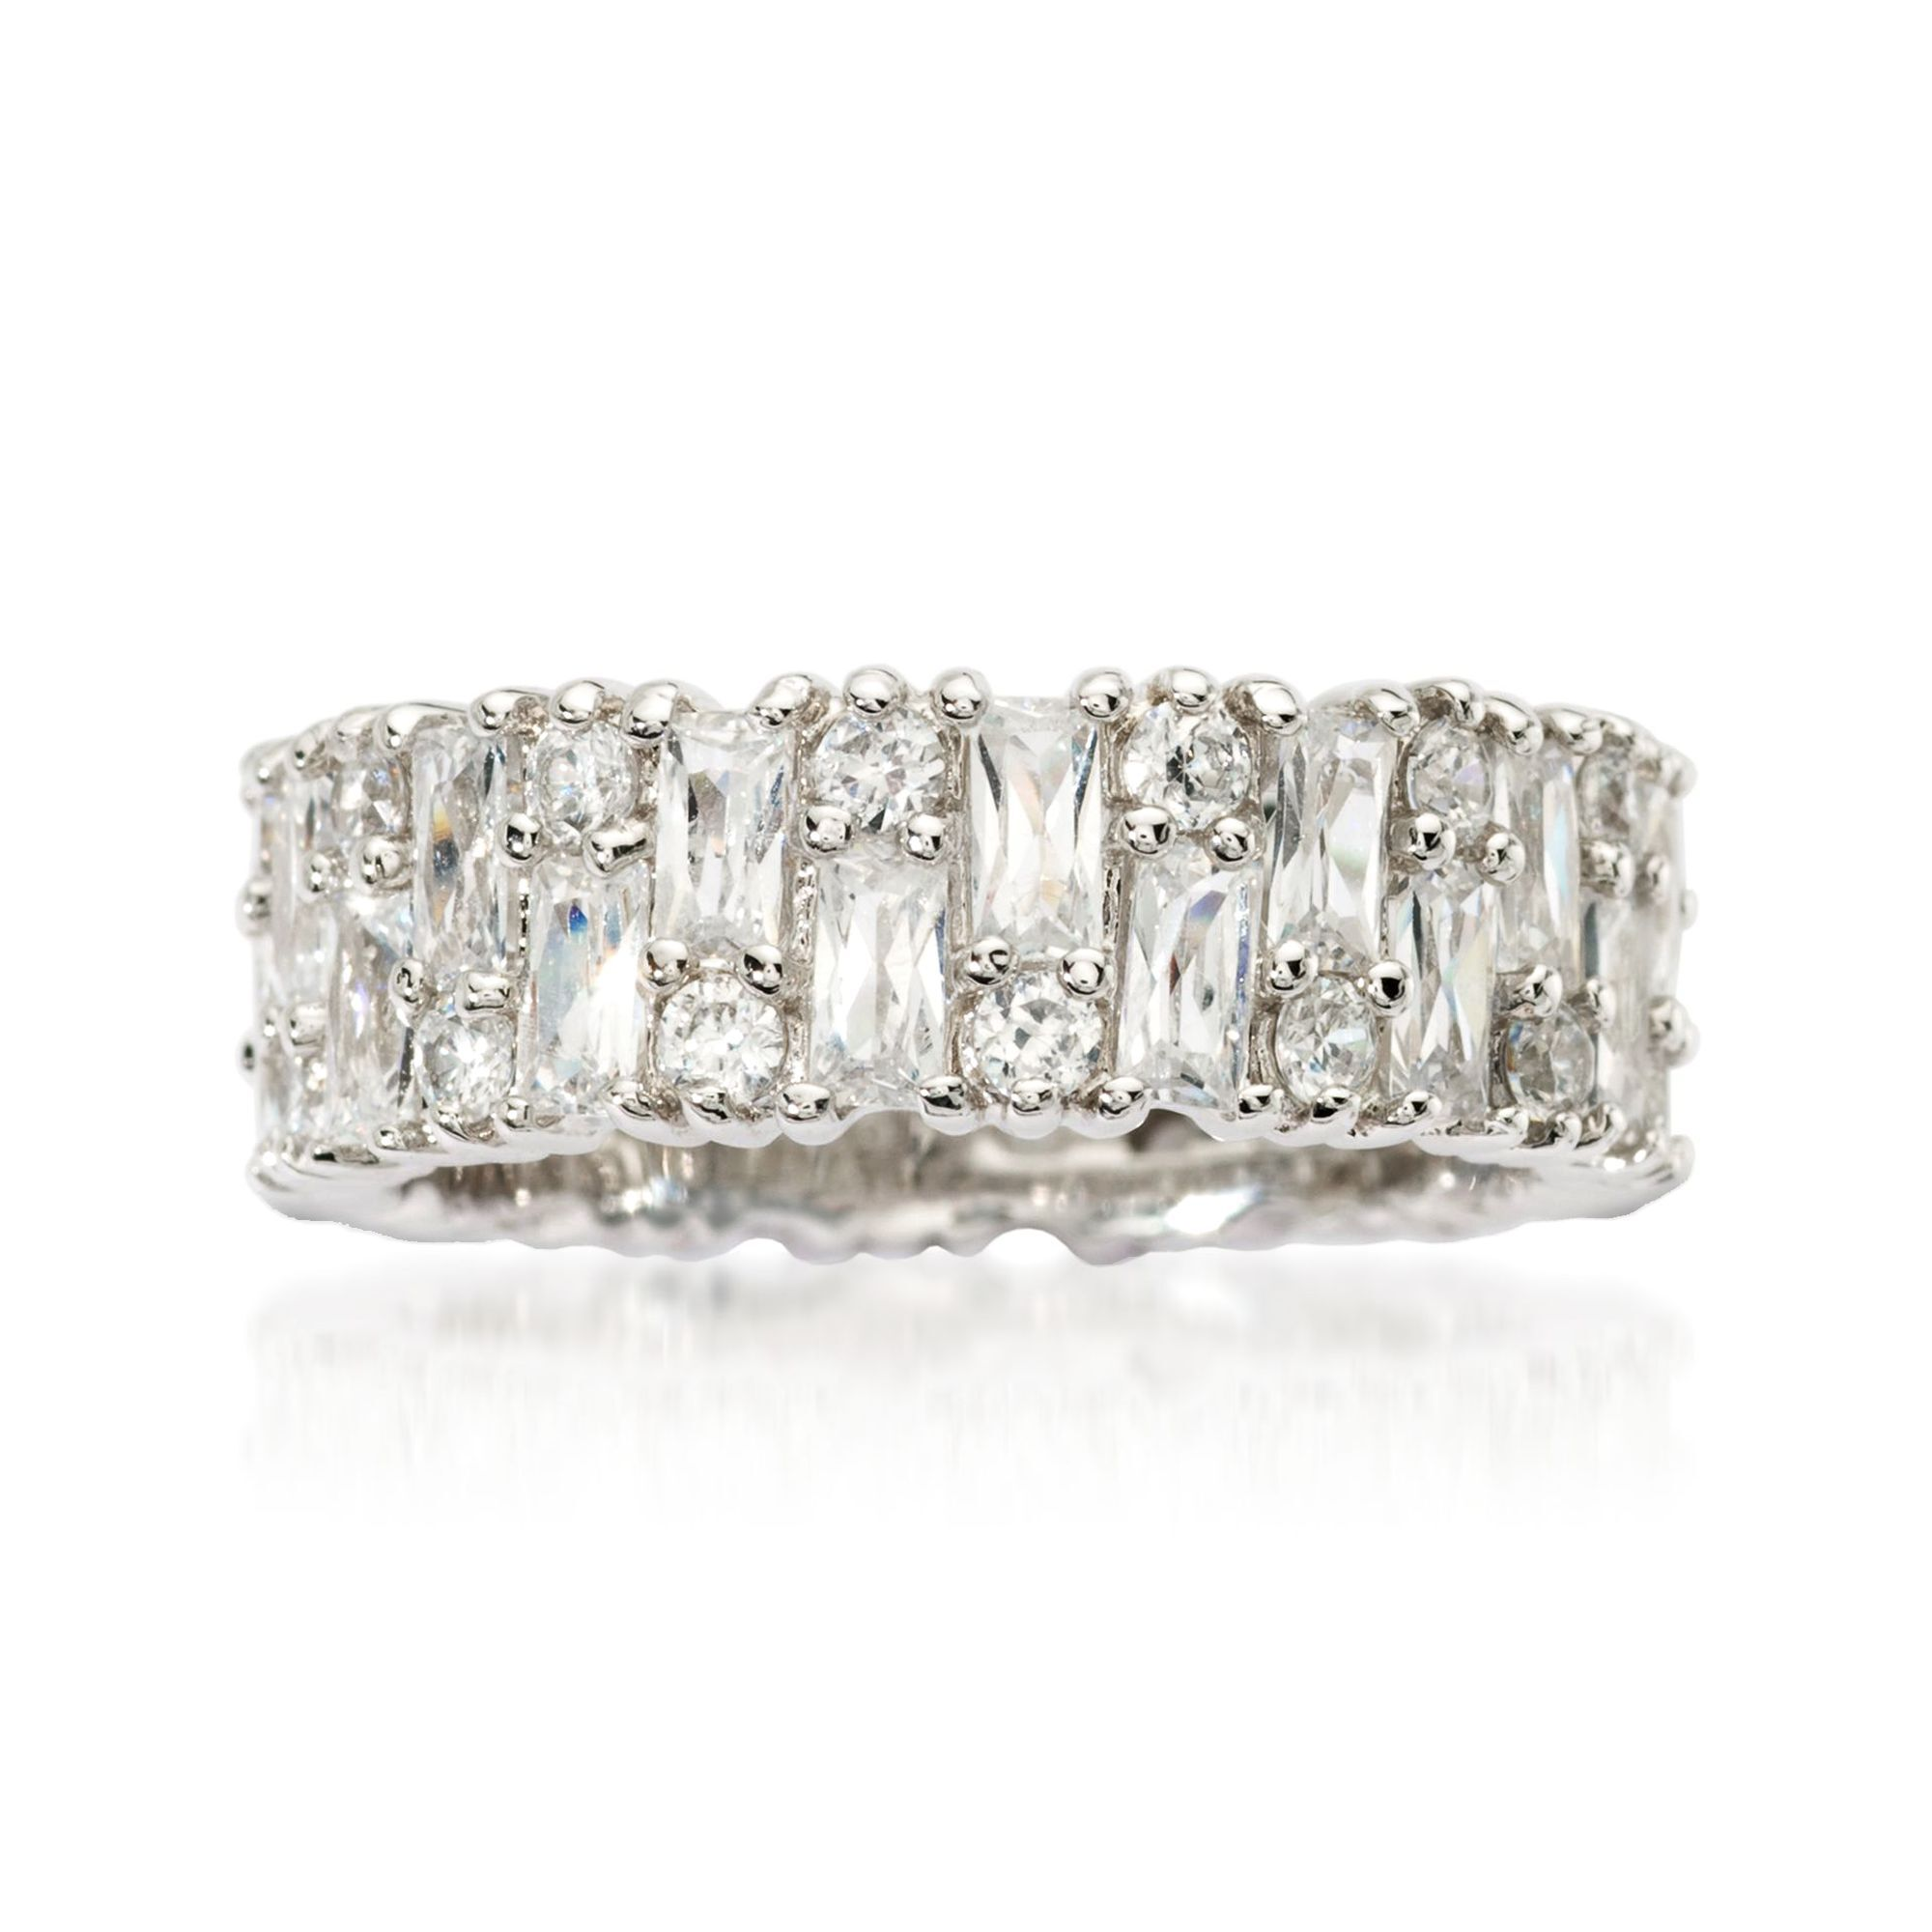 Jewelry & Watches New Fashion Brilliant Cut Birthstone Wedding Sterling Silver Clear Baguette Cz Fashion Ring